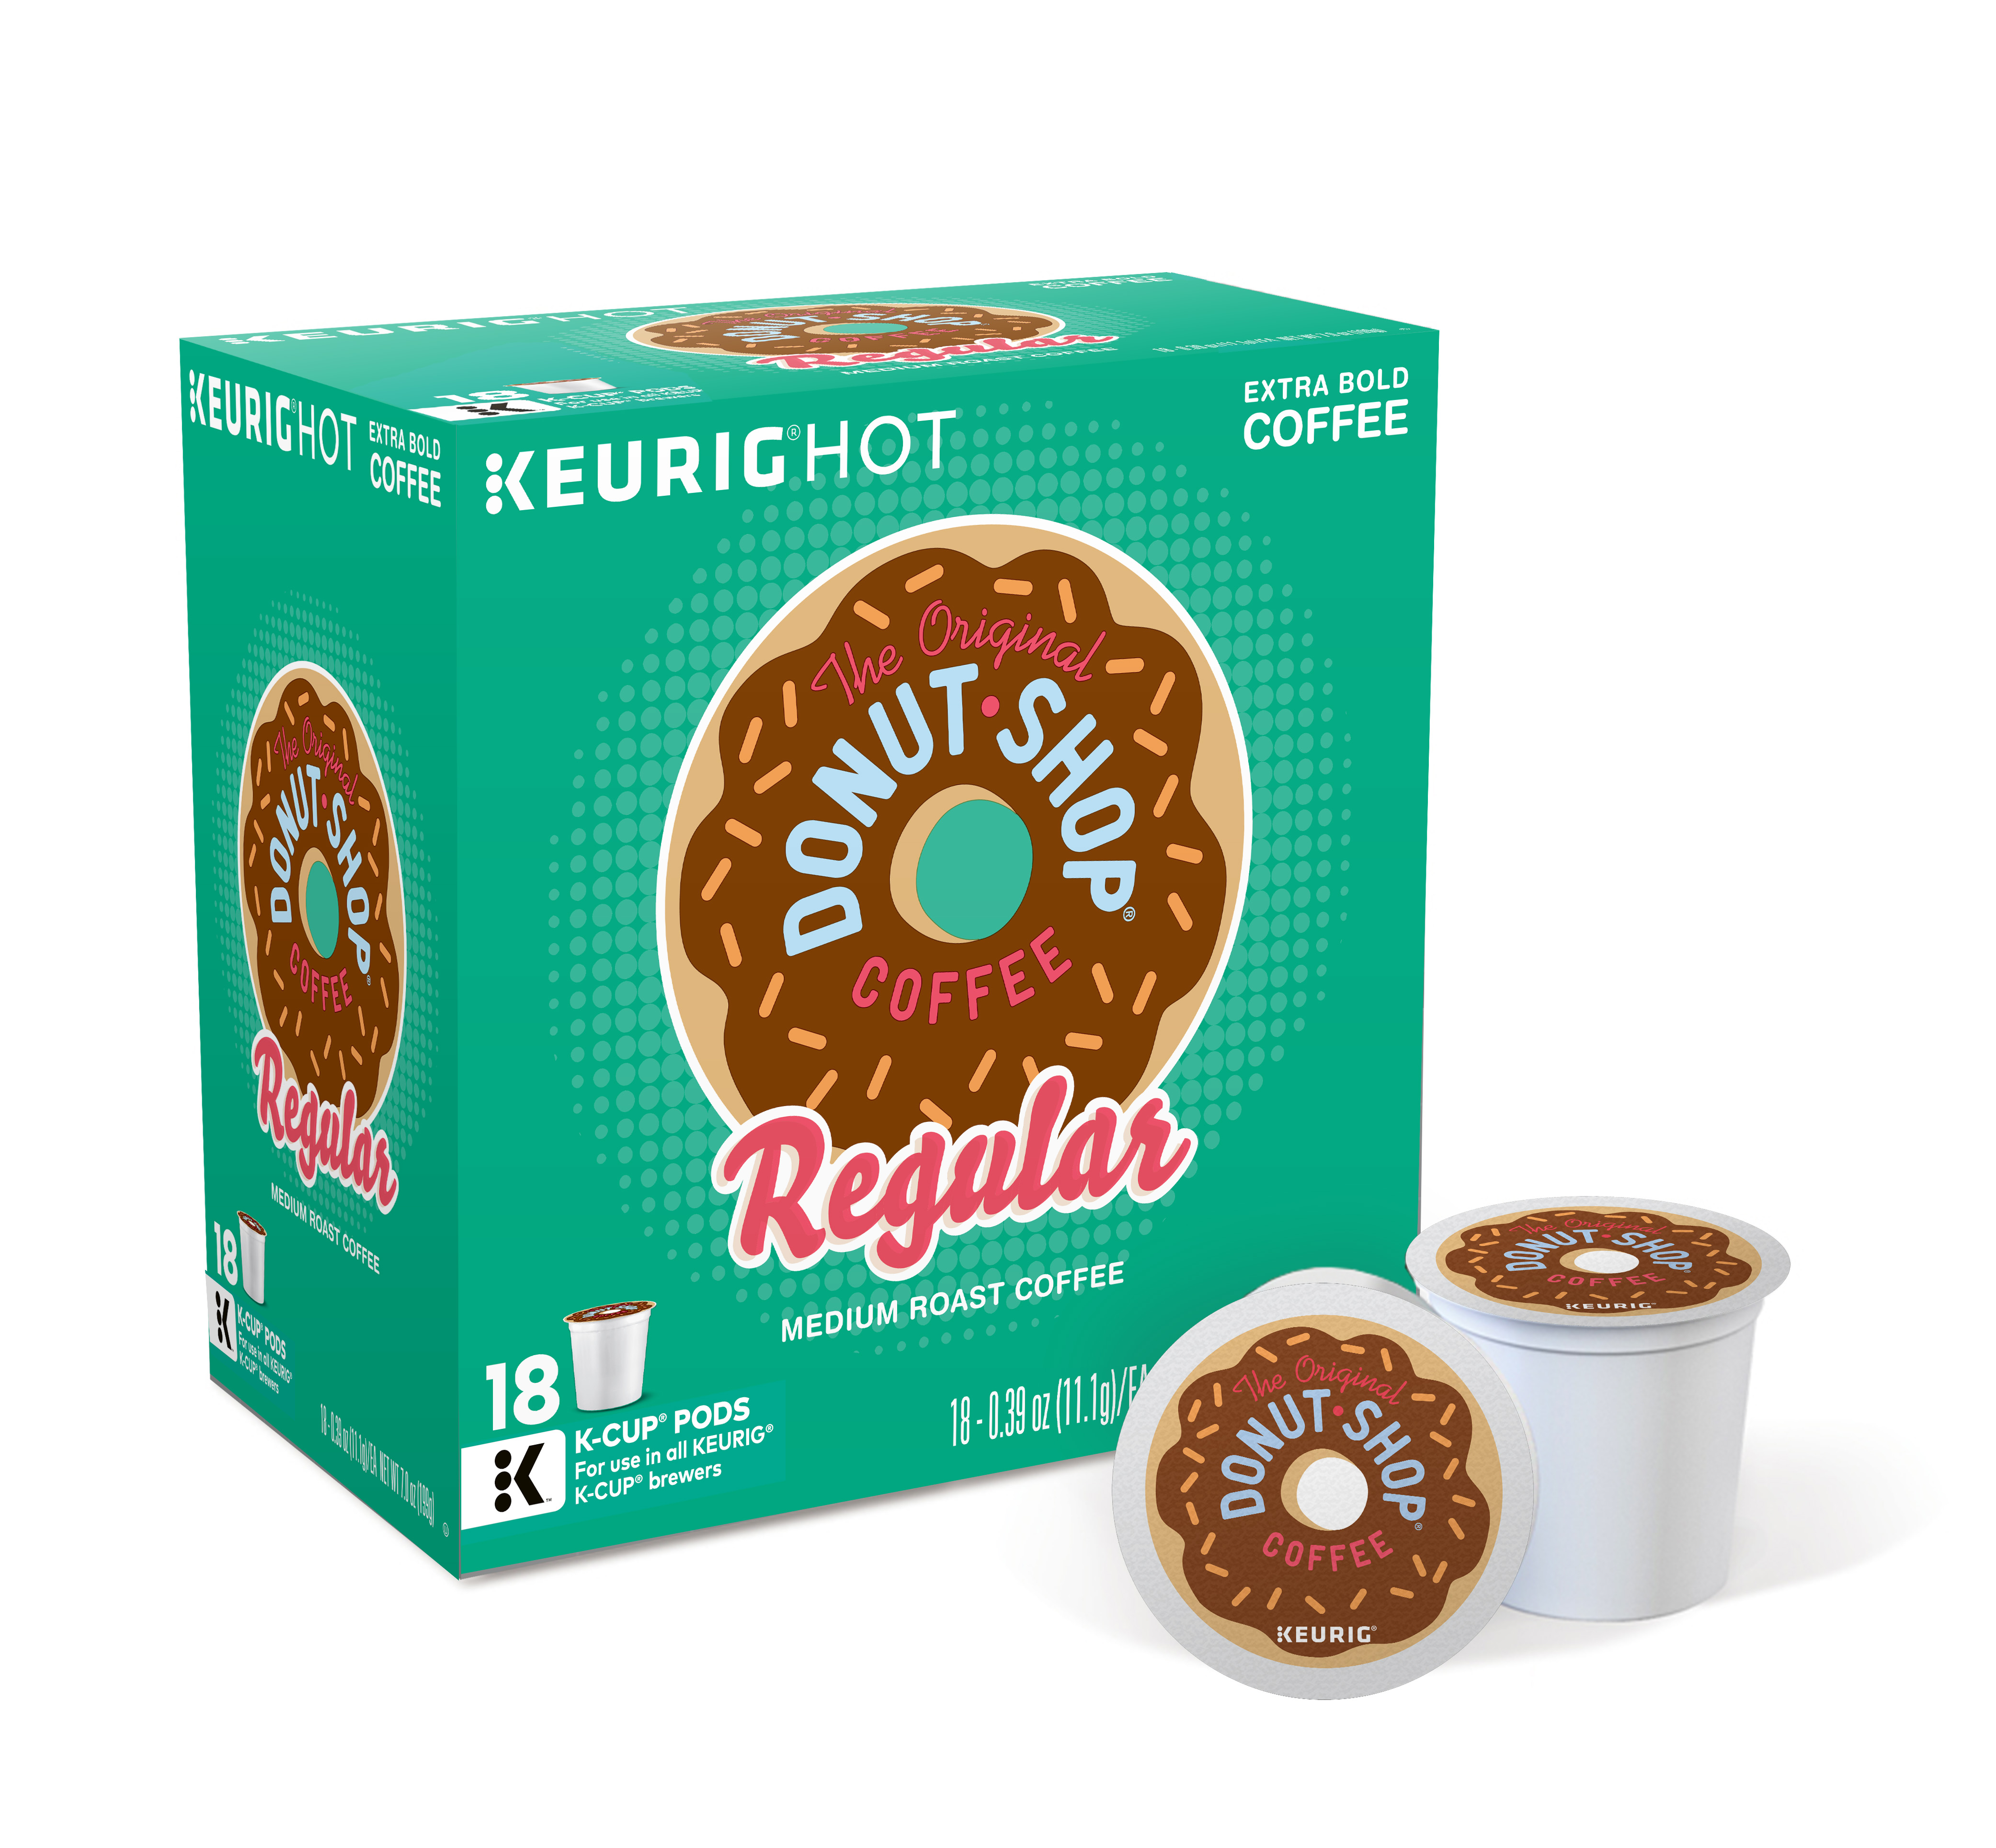 The Original Donut Shop Regular Keurig Single-Serve K-Cup Pods, Medium Roast Coffee, 18